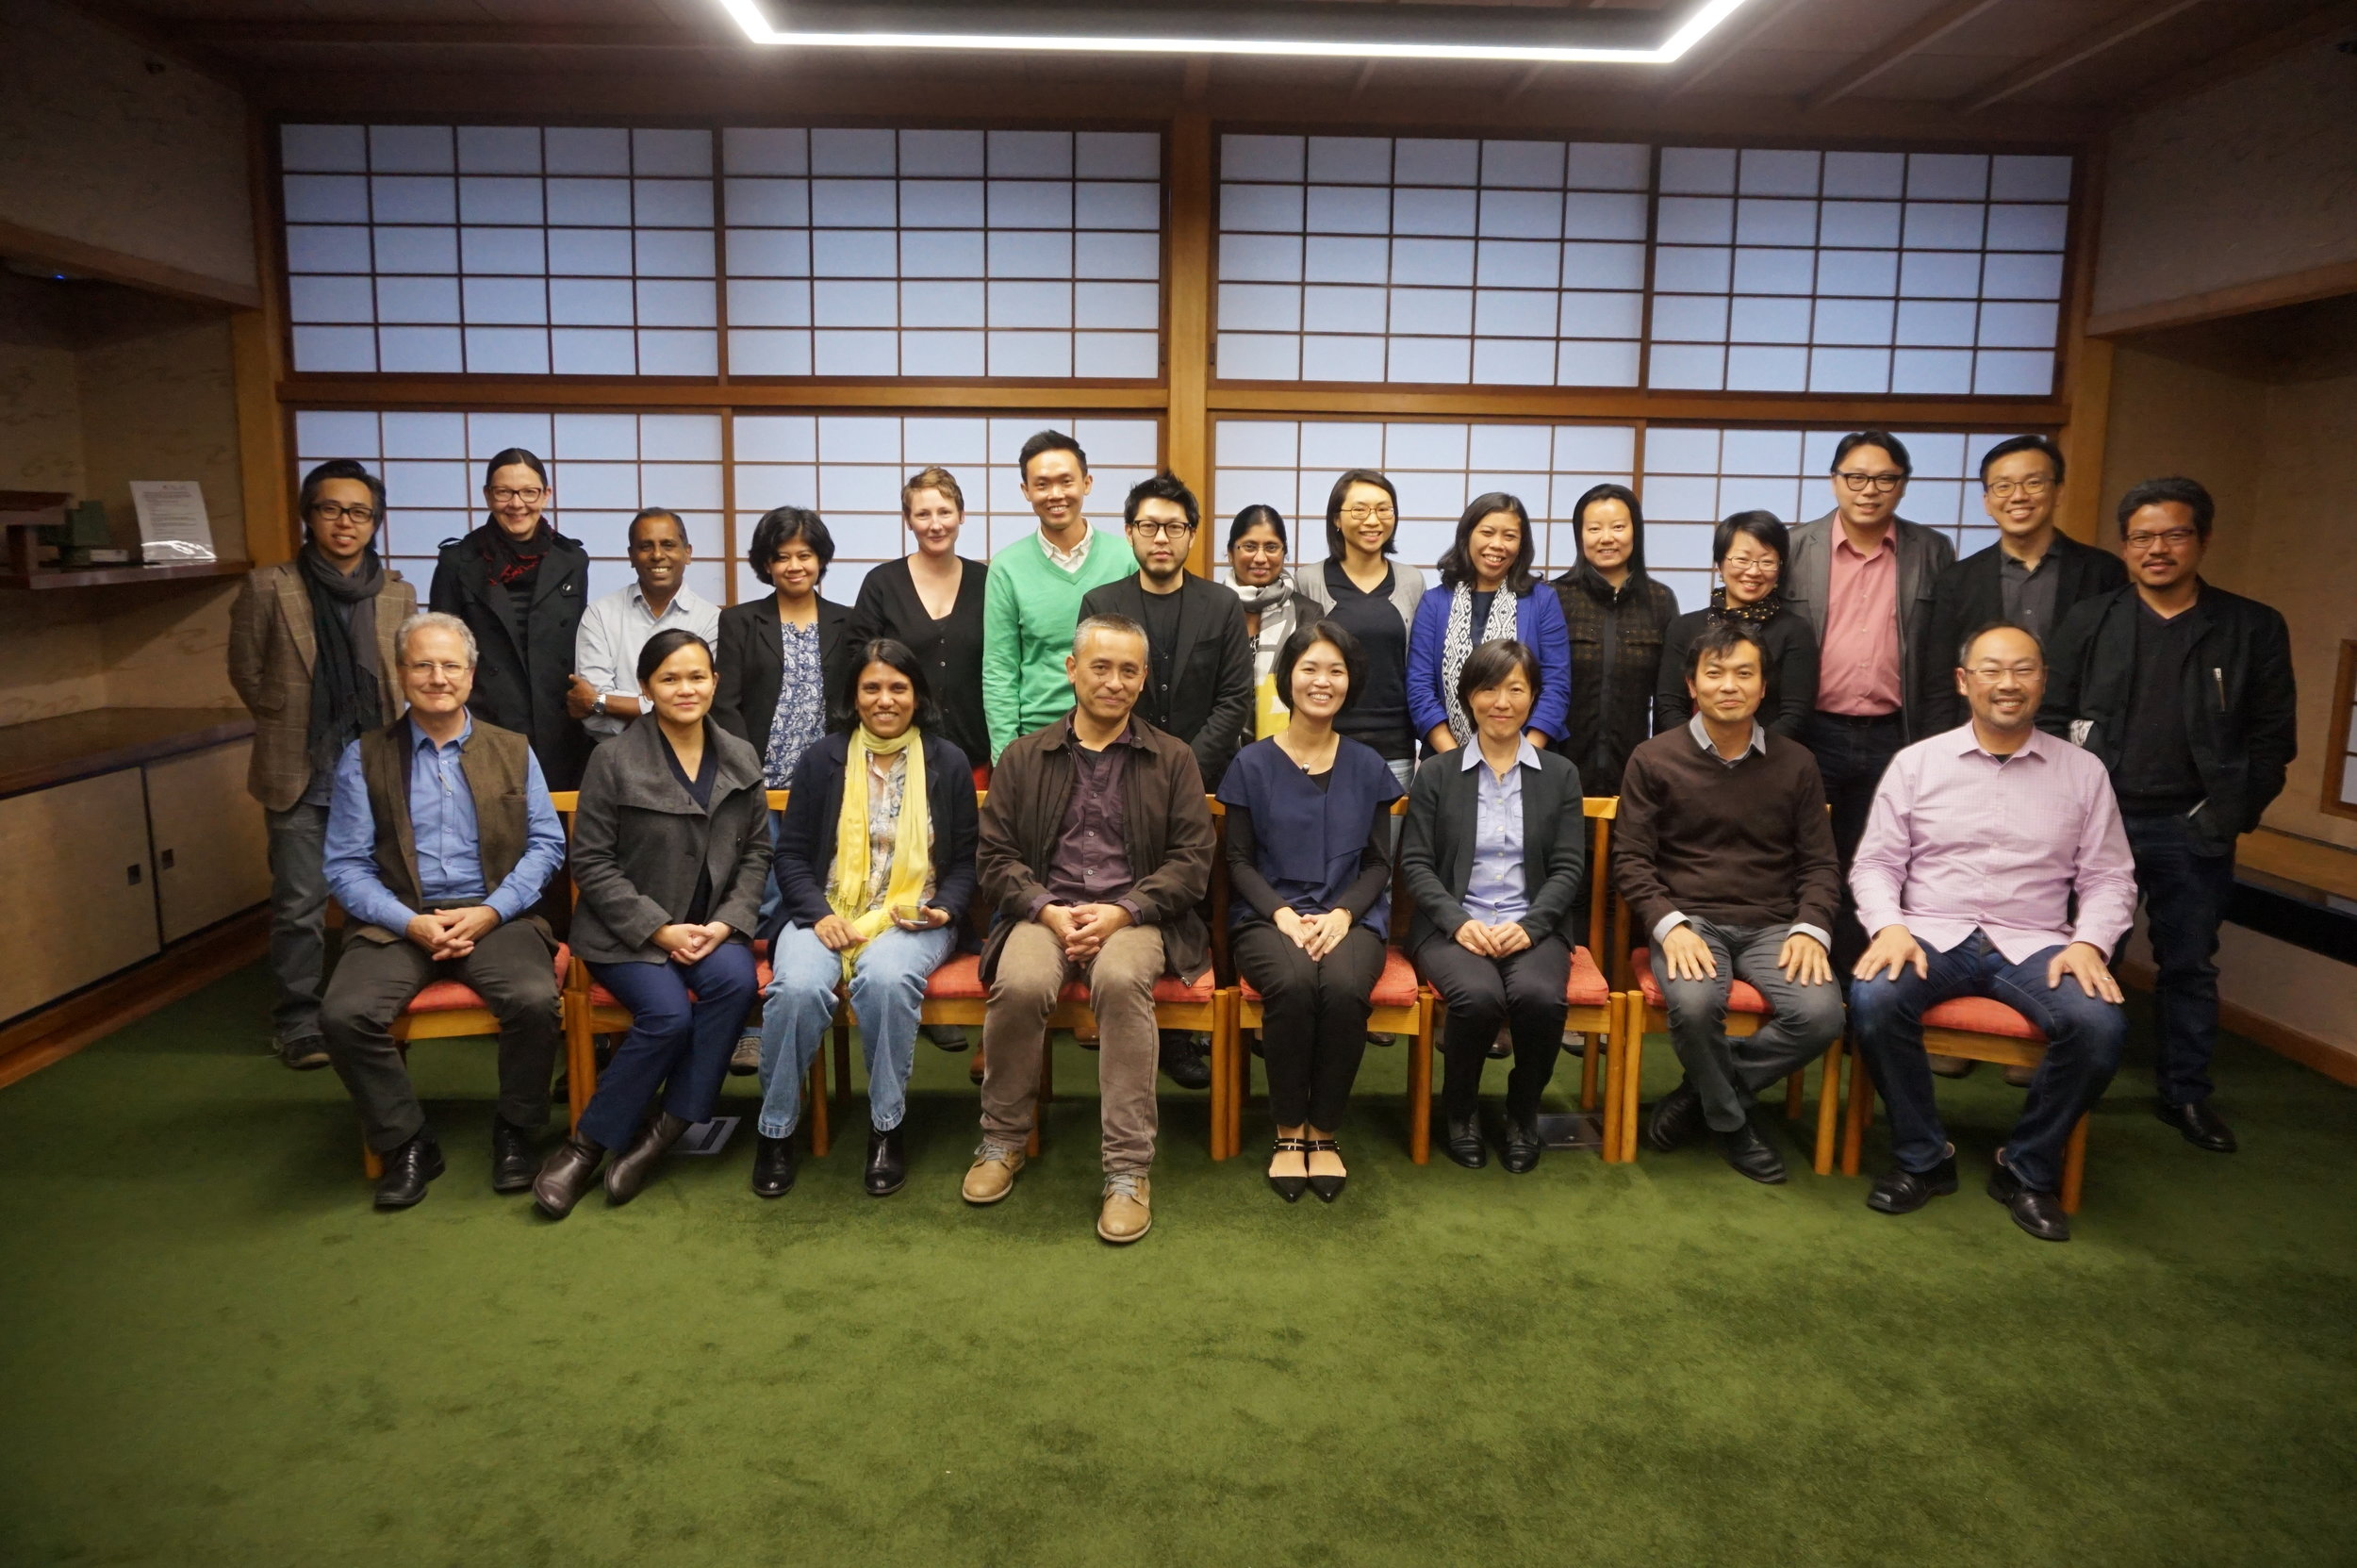 Spaces in Transition: Globalisation, Transnationalism and Urban Change in the Asia-Pacific Event @ the MSD (4-5 JULY 2016)